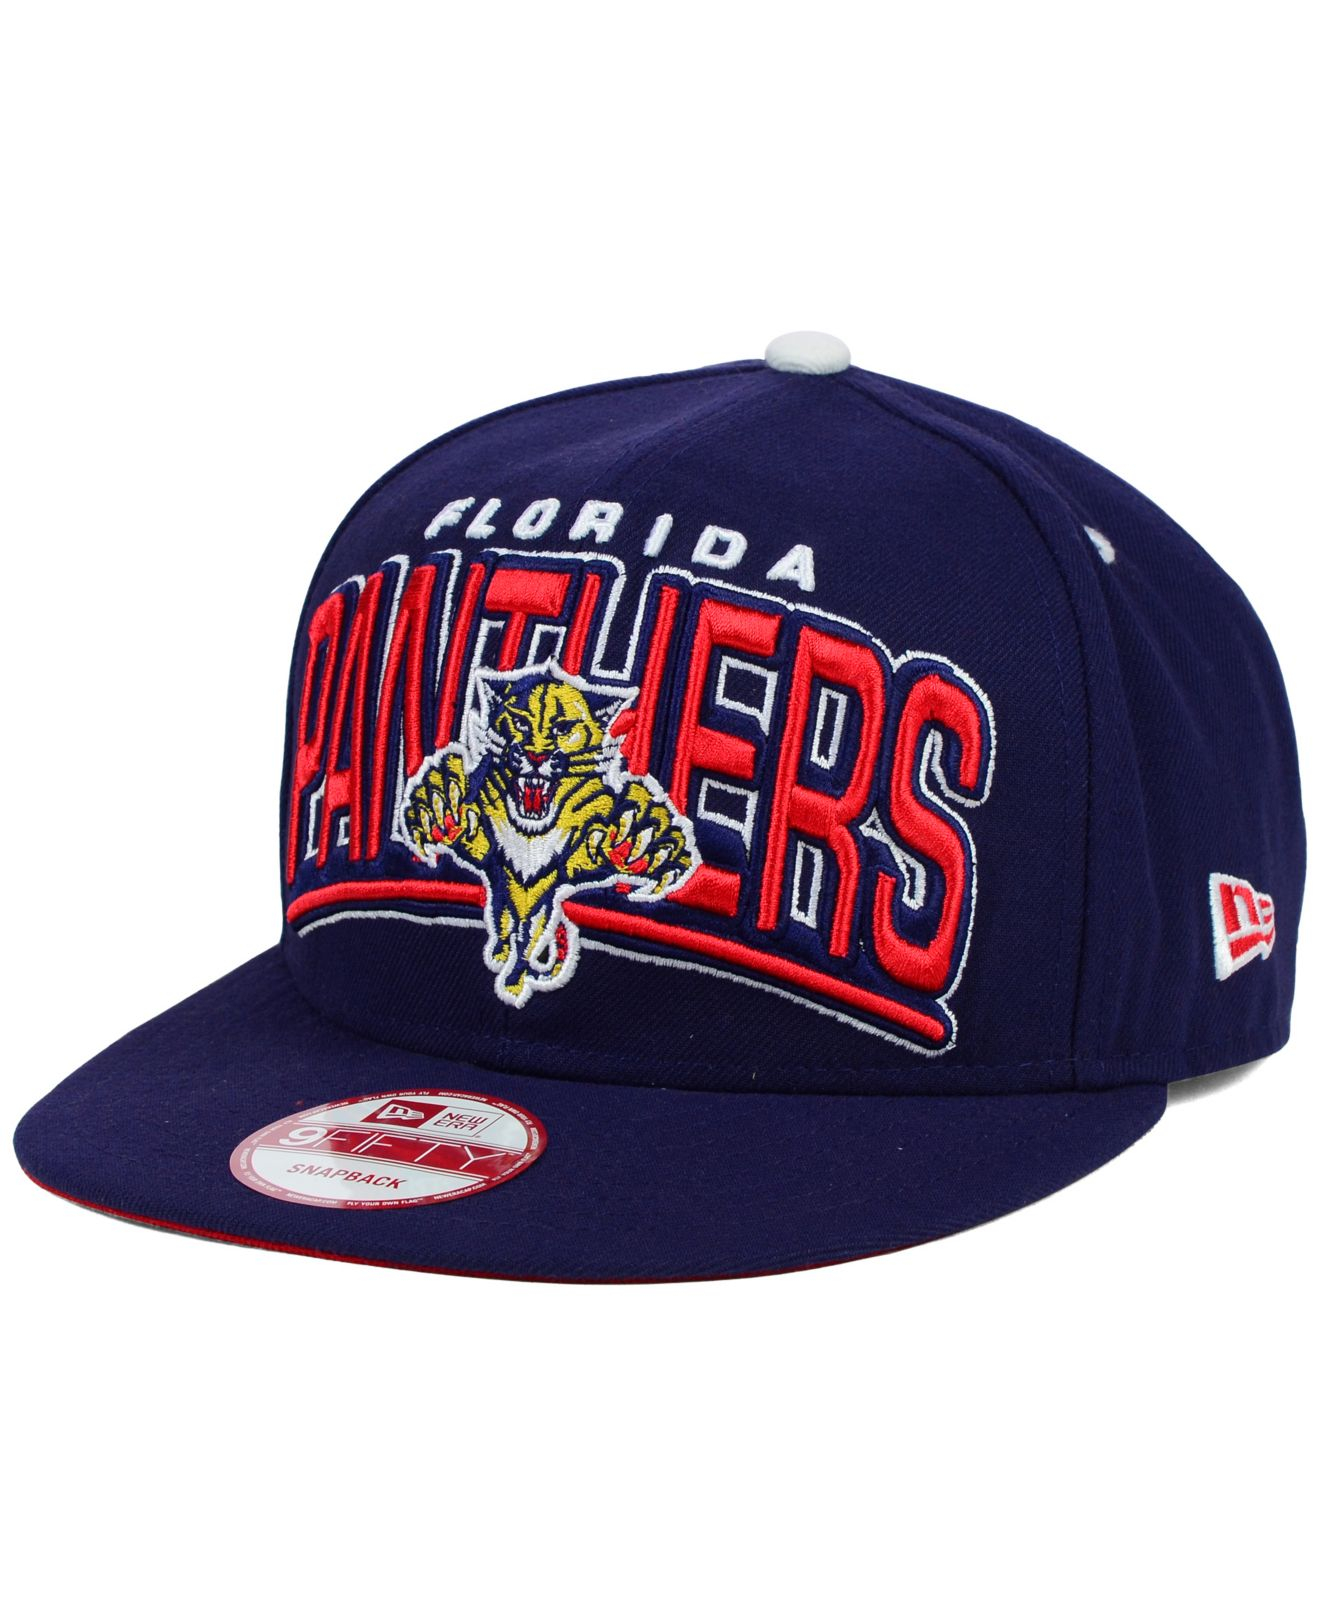 ... nfl 2014 draft flip xp 39thirty cap 77b0a 5d7f5 australia carolina  panthers hat 22e17 0a4e7 uk lyst ktz florida panthers back up 9fifty snapback  cap in ... a5d5feab6